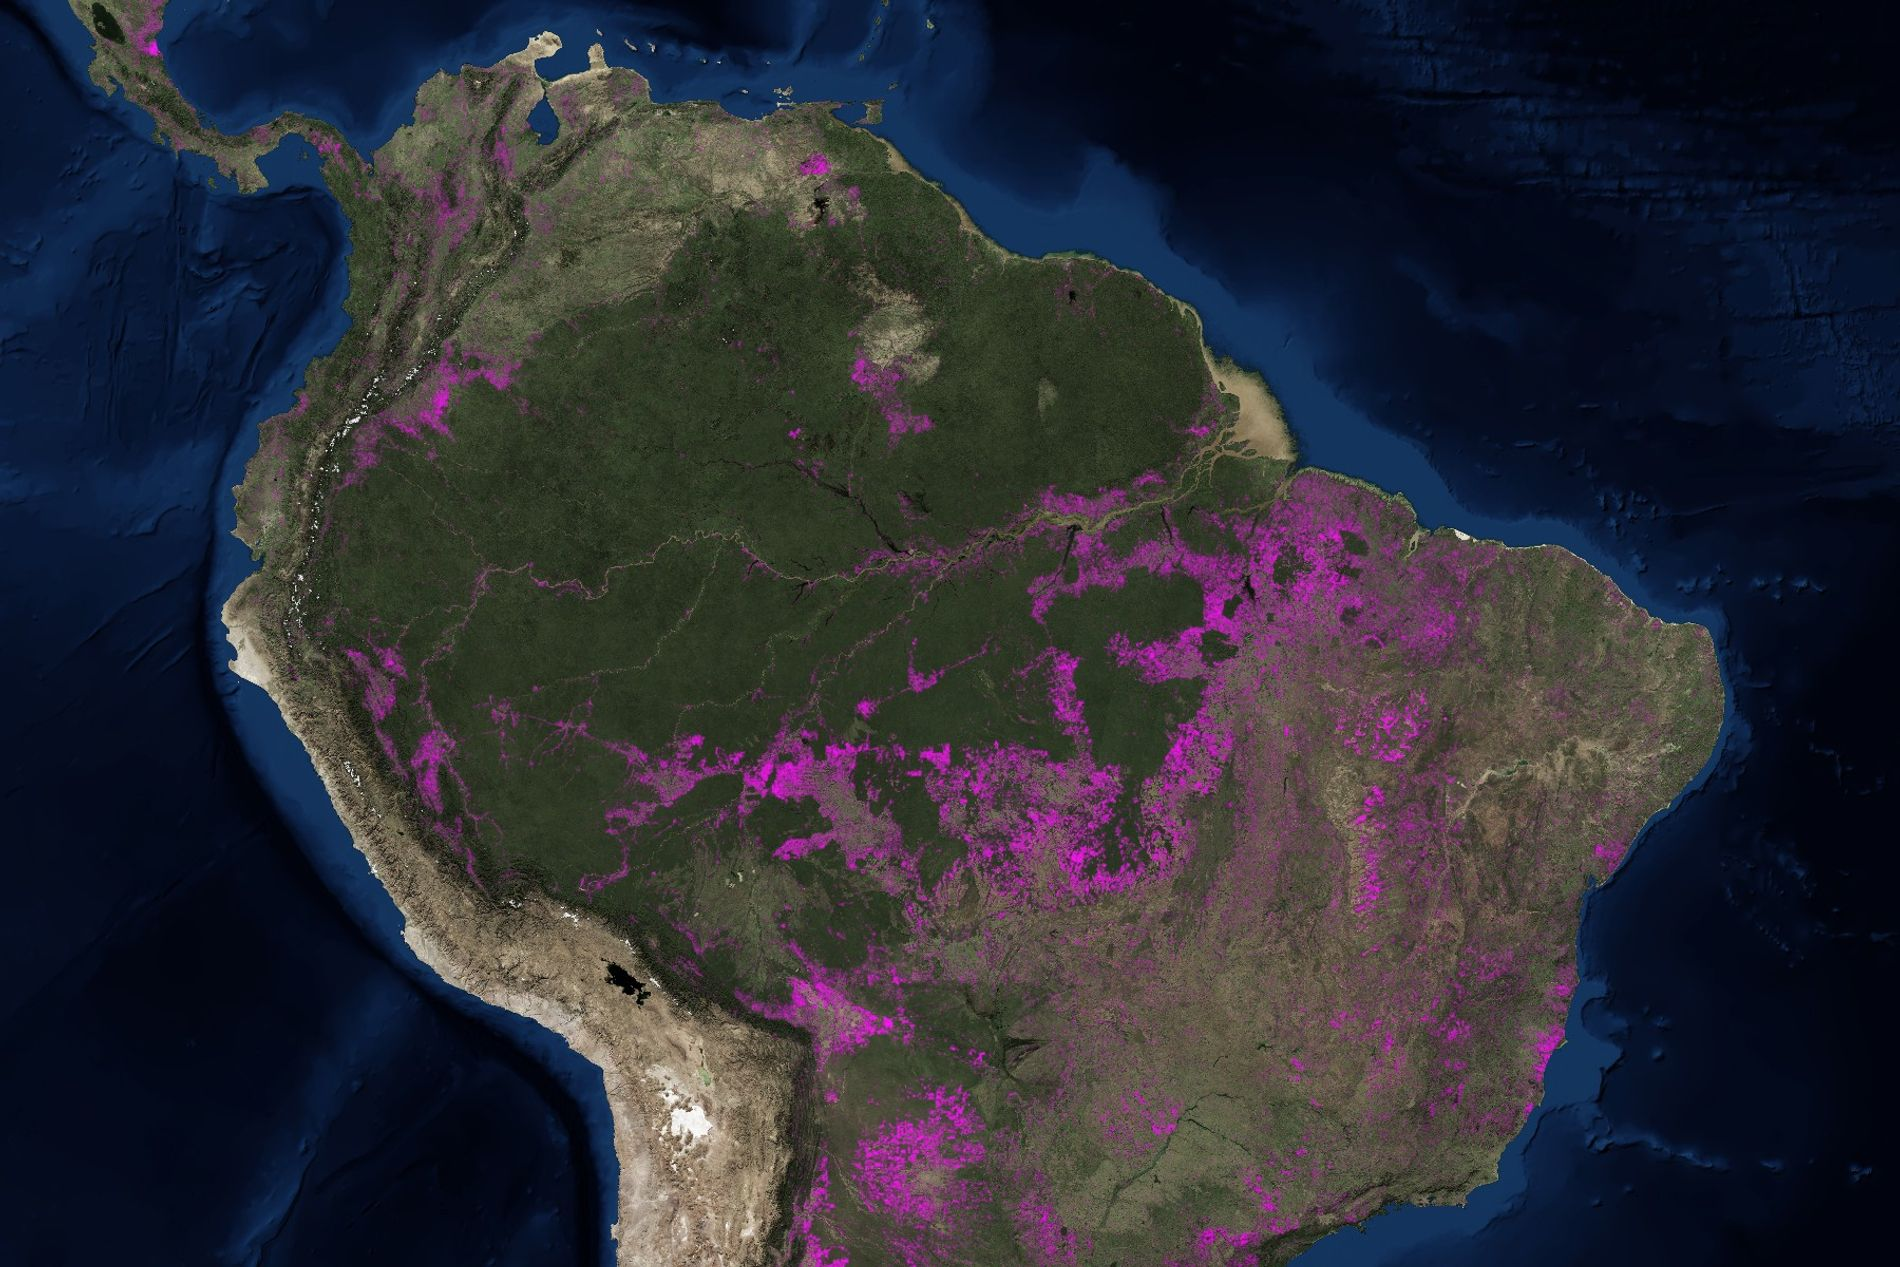 This map shows millions of acres of lost Amazon rainforest ... Deforestation Map on ecological succession map, climate change, hydroelectric dams map, land pollution, transboundary pollution map, environmental issue, world map, ozone depletion, exploitation of natural resources, global warming map, land degradation, groundwater depletion map, pesticide use map, greenhouse gas, species extinction map, glacier melt map, global warming, ecological footprint map, environmental degradation, water depletion map, tree plantation map, intensive farming map, danish language map, illegal logging, mass extinction map, forest reserves map, land use map, indoor air pollution map, environmental problems map, genetically modified crops map,